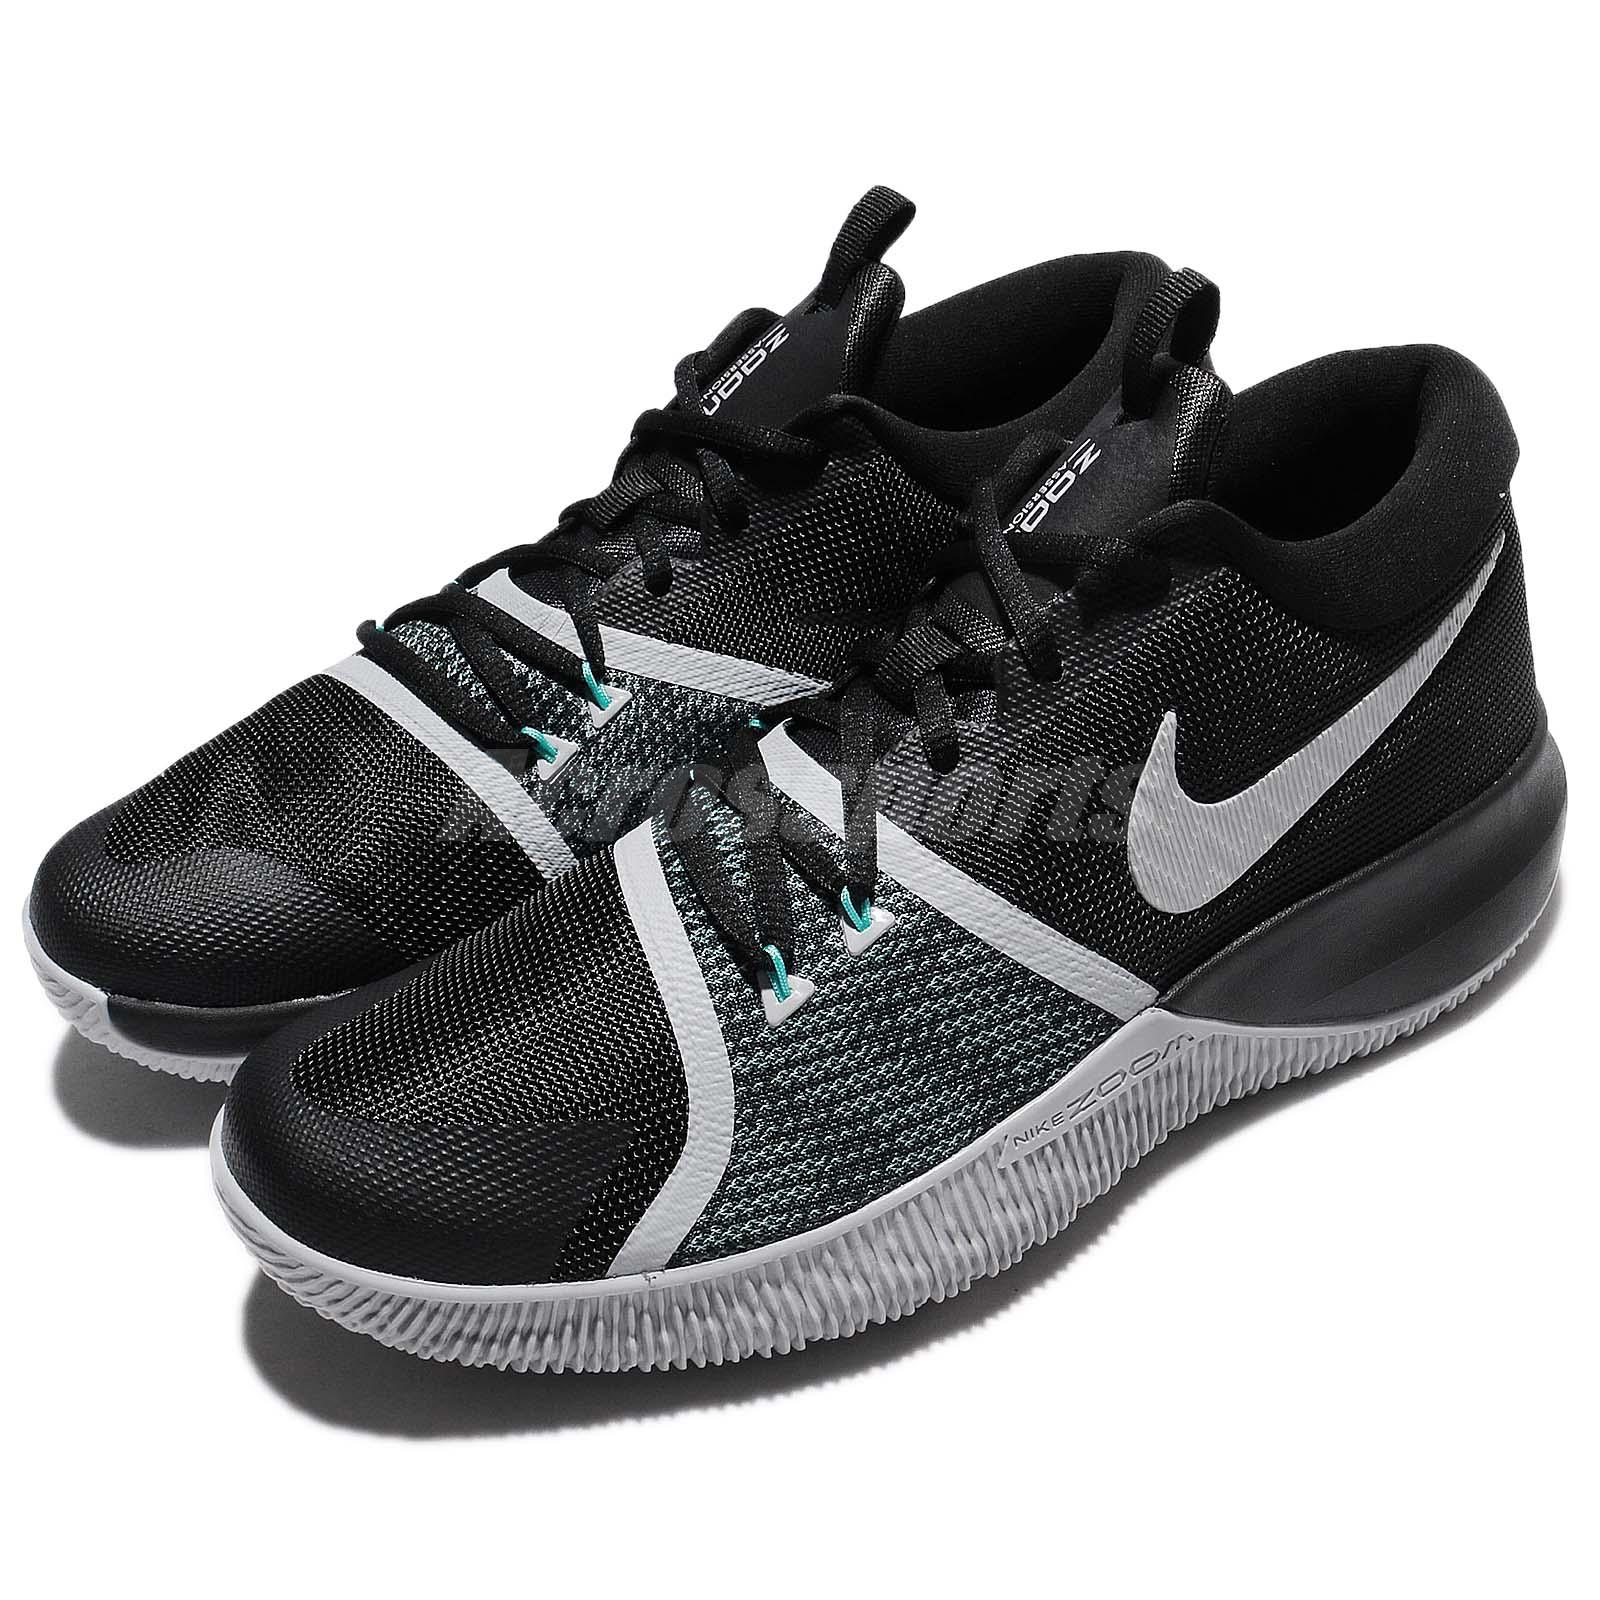 226c63201e30 Details about Nike Zoom Assersion EP XDR Air Black White Grey Men  Basketball Shoes 917506-004